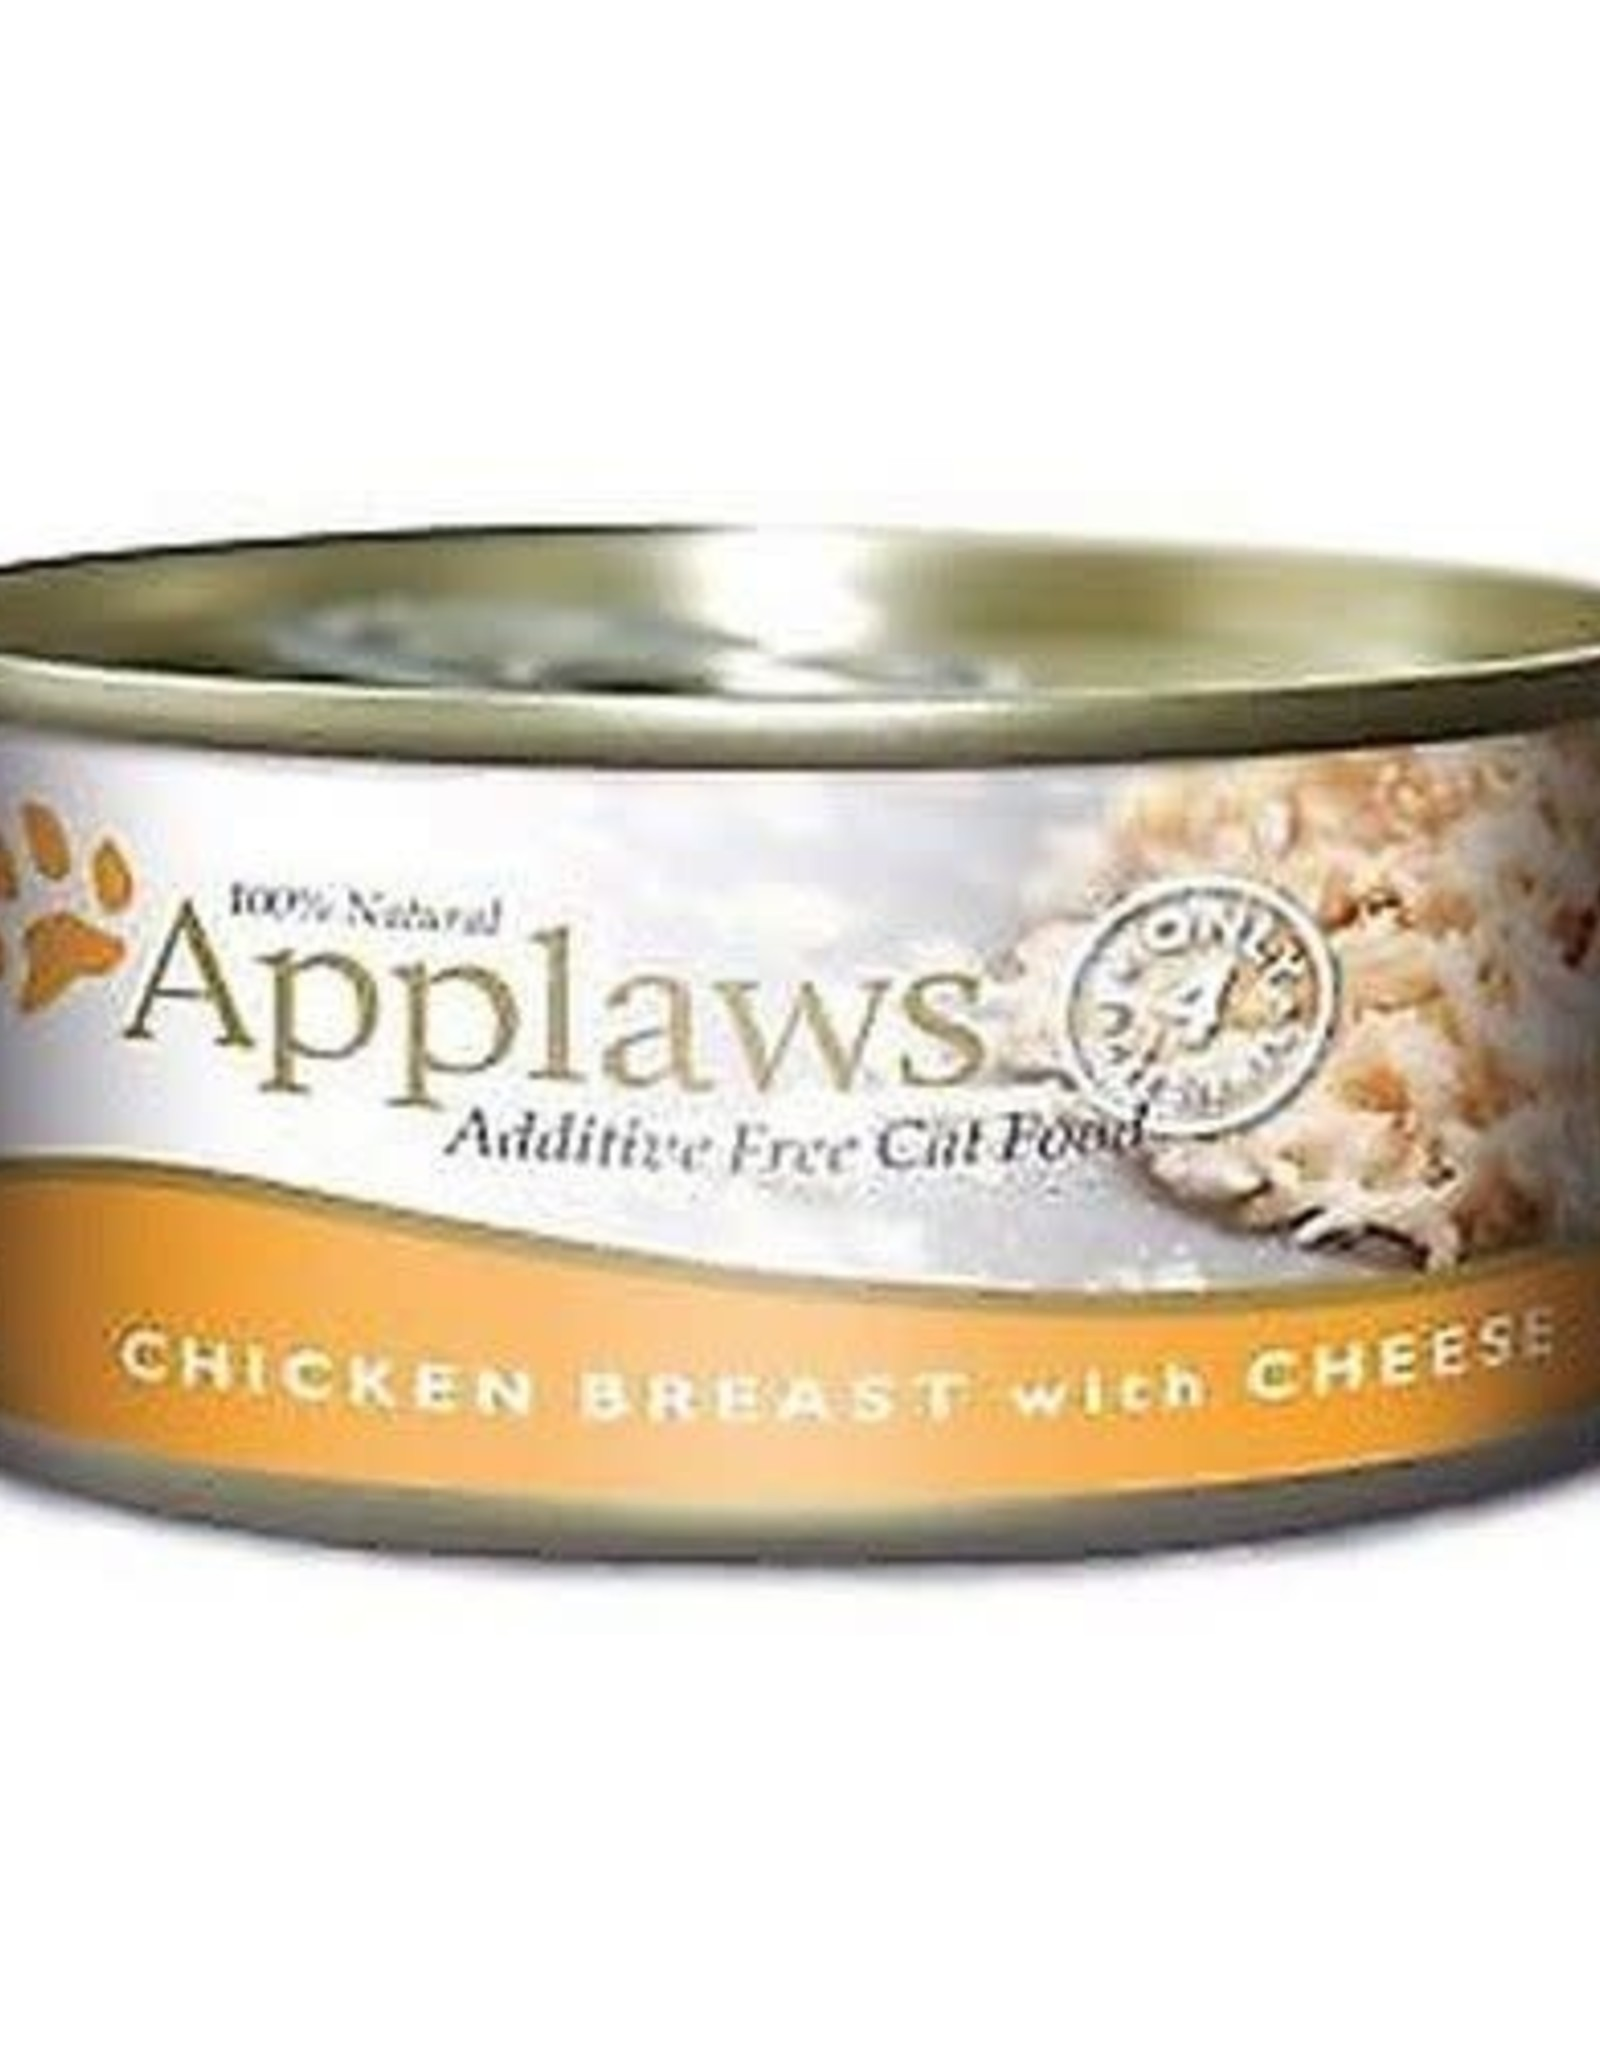 Applaws Applaws Chicken Breast with Cheese Canned Cat Food 5.5 oz